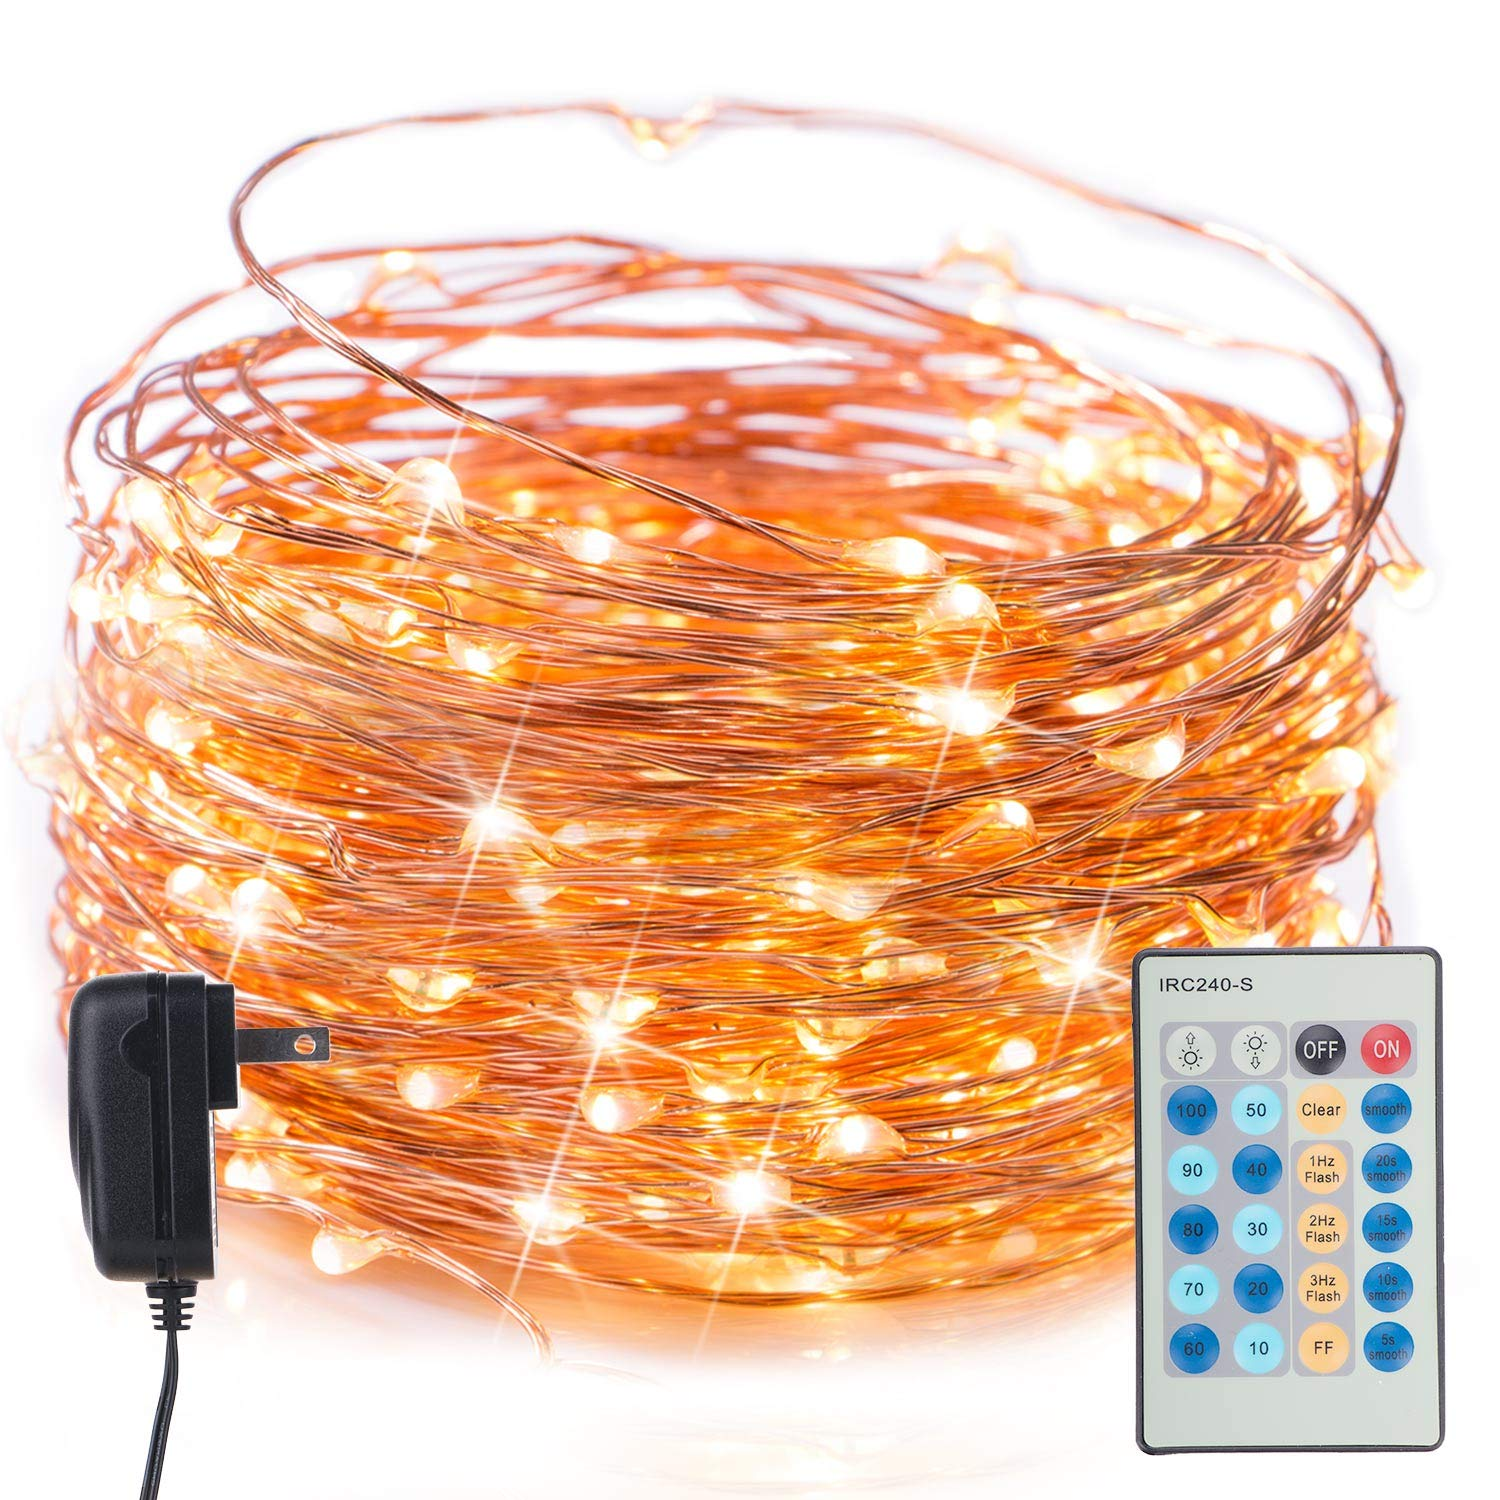 40Ft 120 LED Fairy Lights Dimmable Waterproof Twinkle Starry Firefly String Lights with Remote Plug in on a Flexible Copper Wire for Christmas Party DIY Wedding Bedroom Indoor Party Decorations, Warm